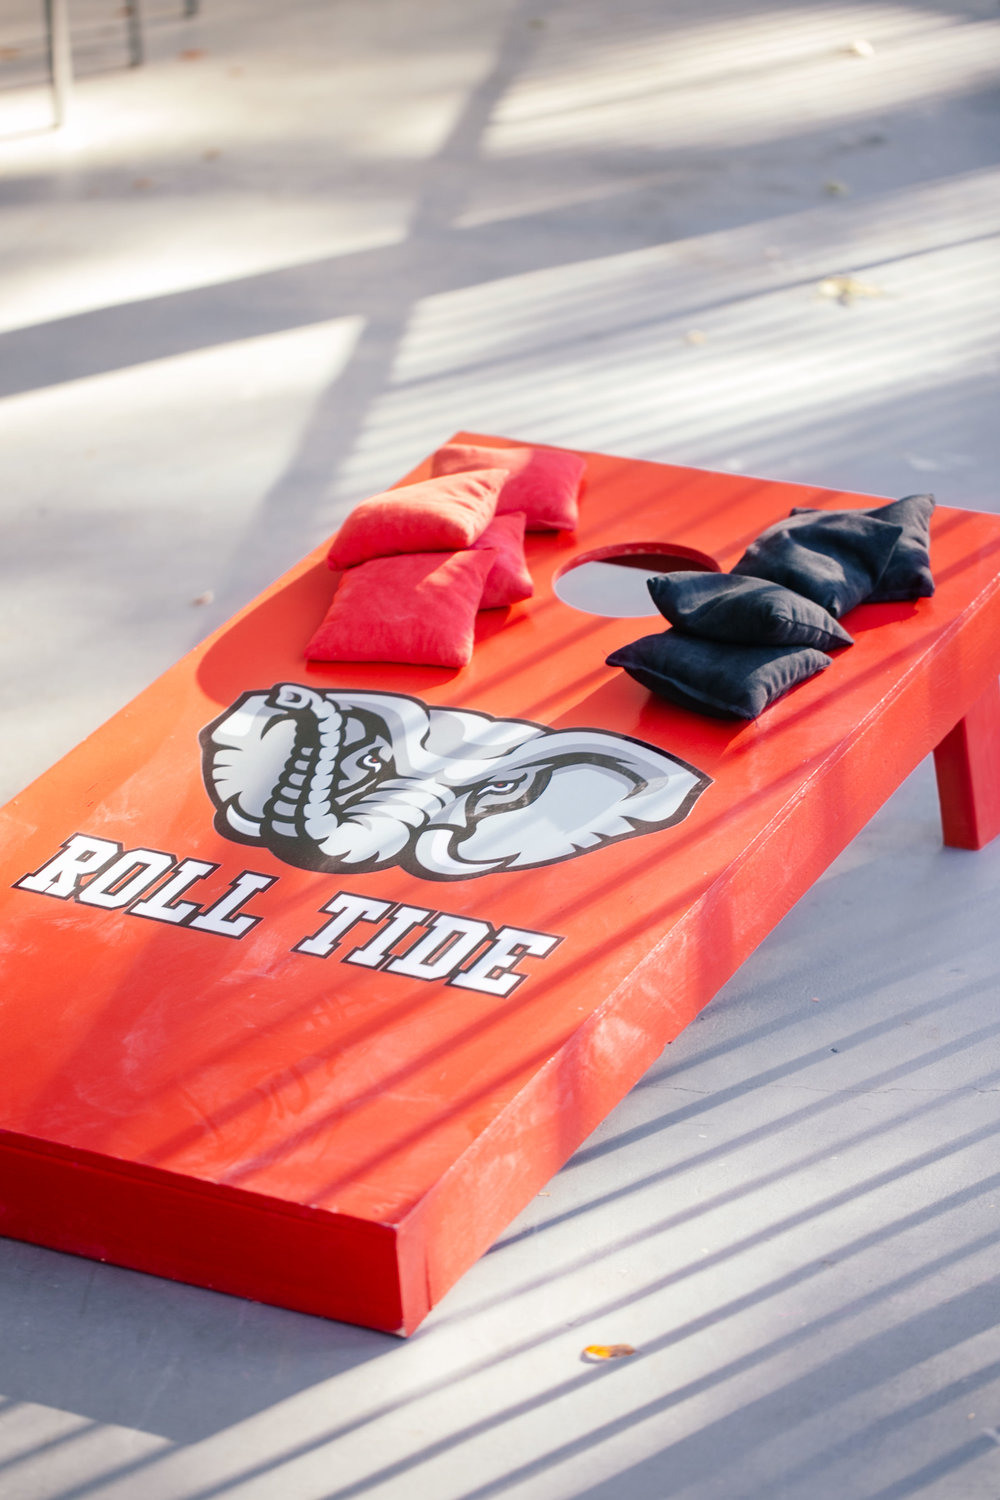 cornhole board alabama roll tide